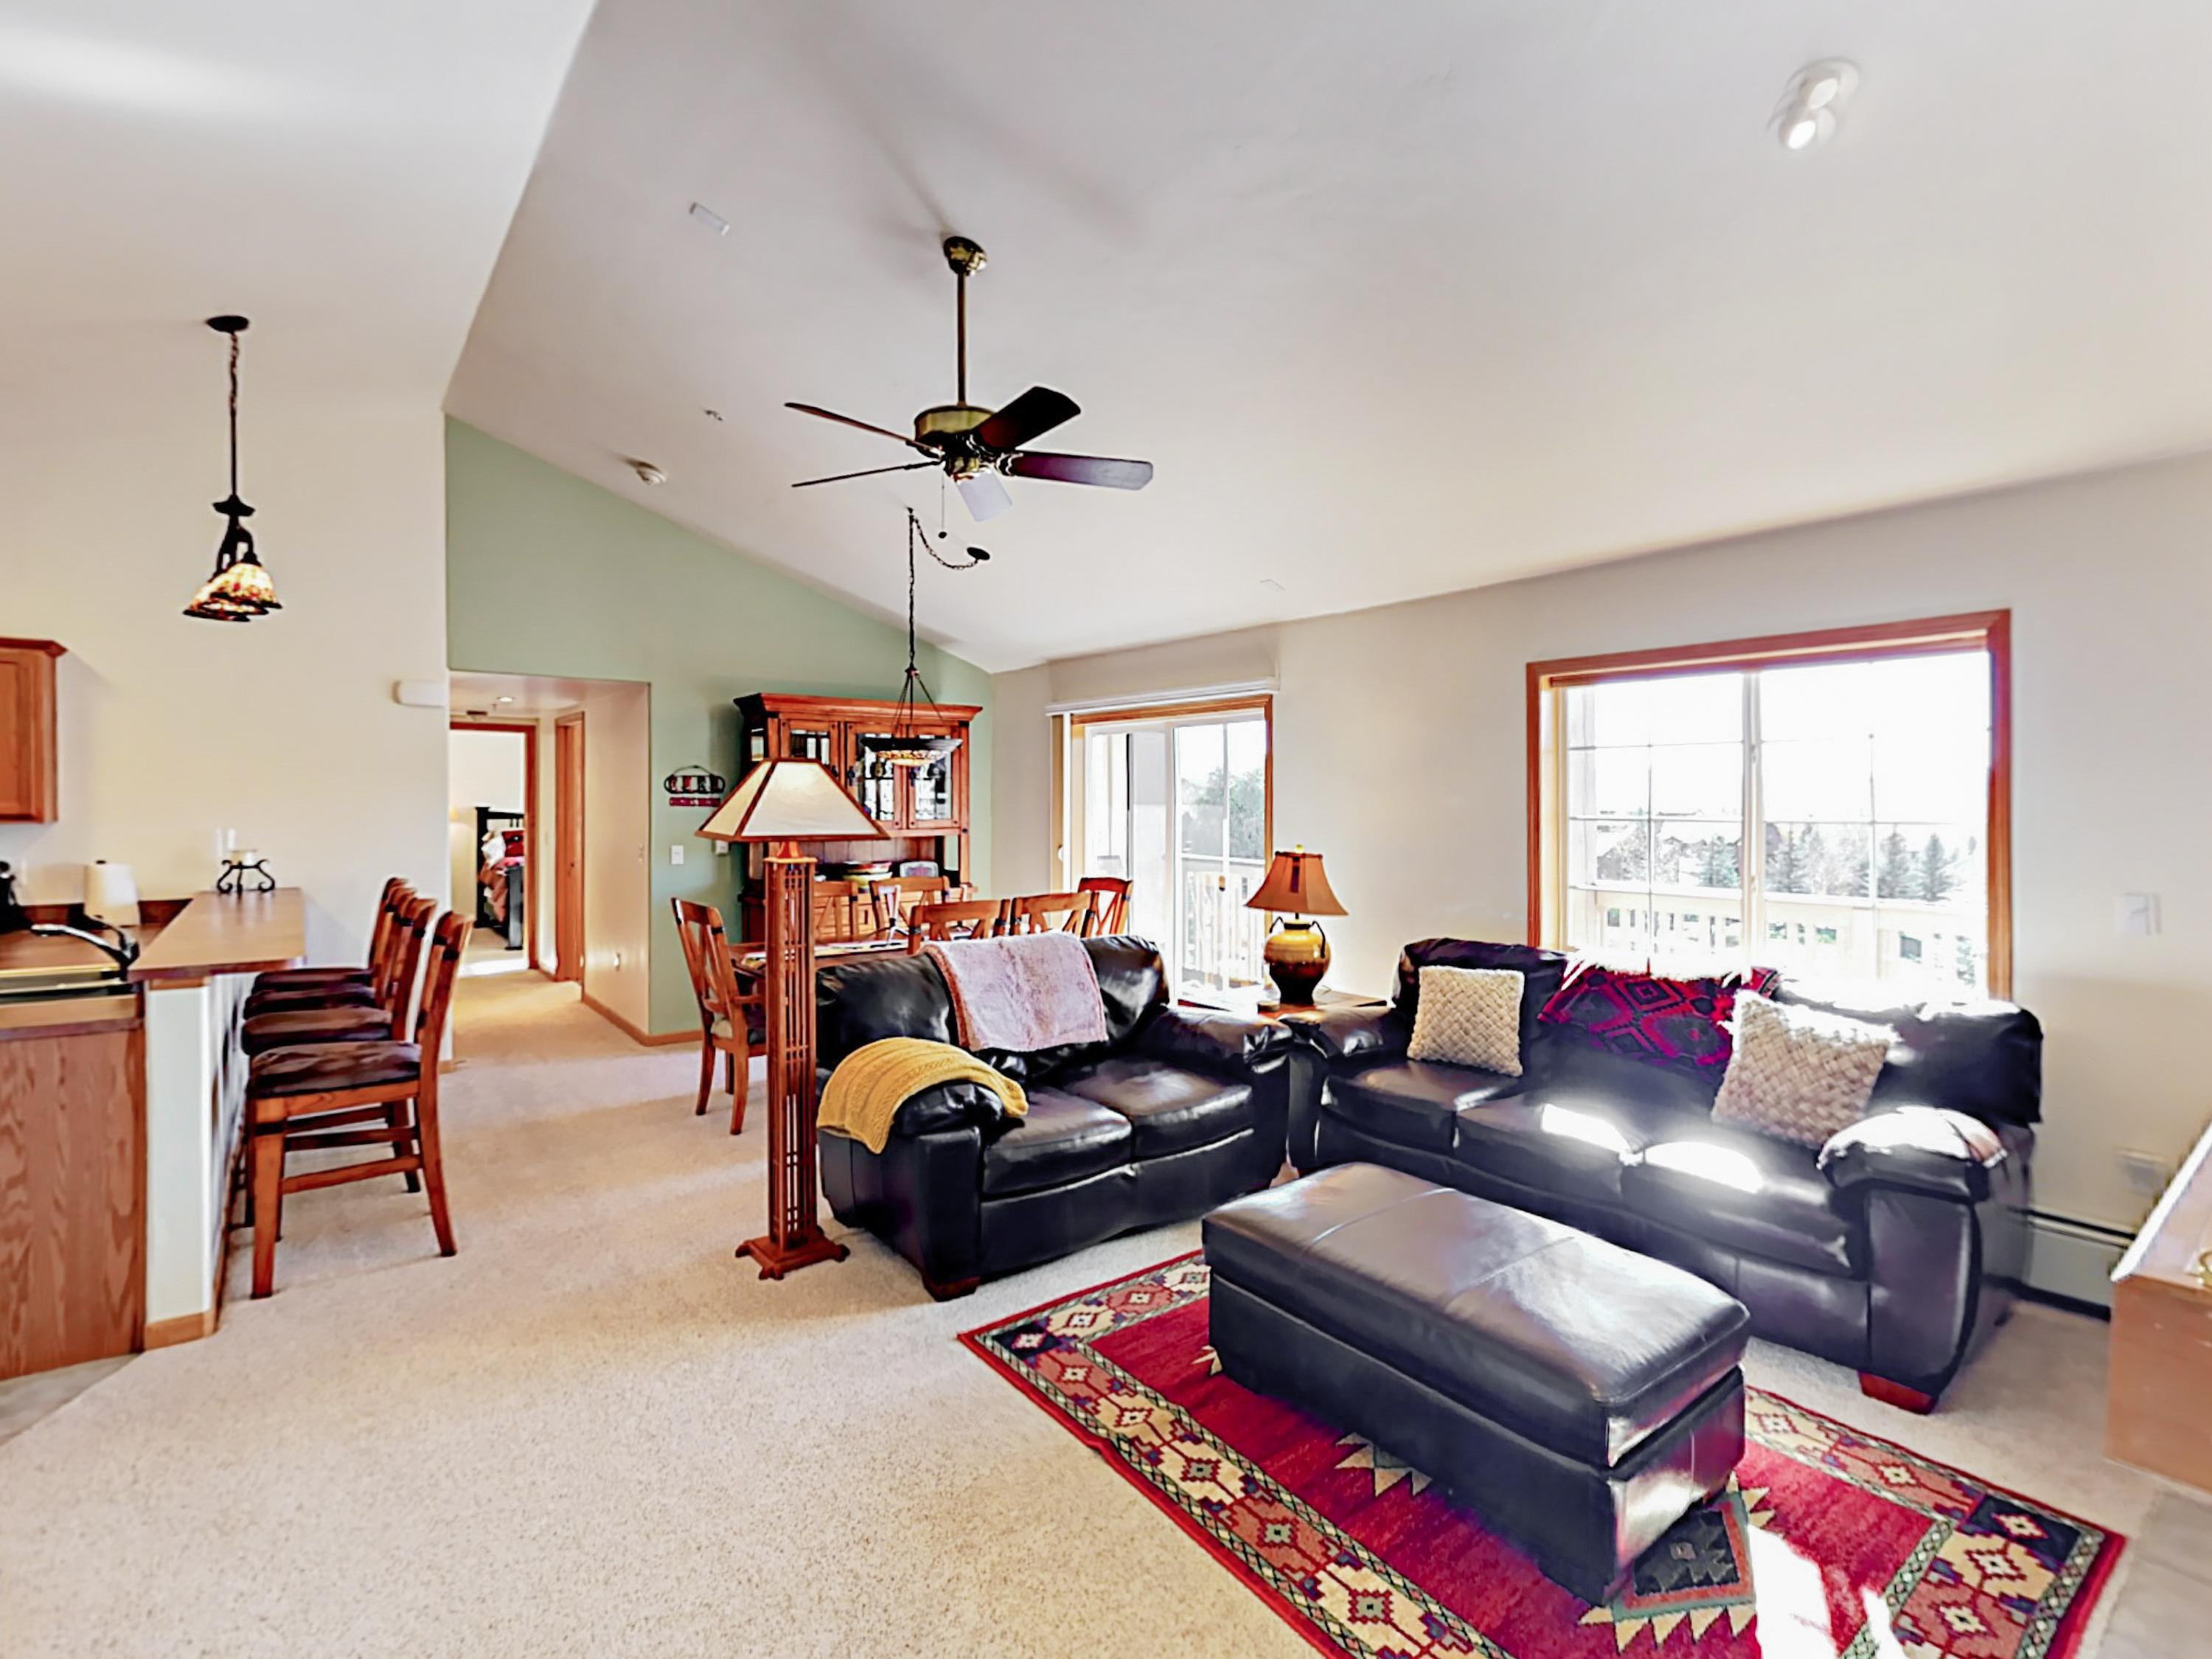 Vaulted ceilings soar in the well-appointed living area.